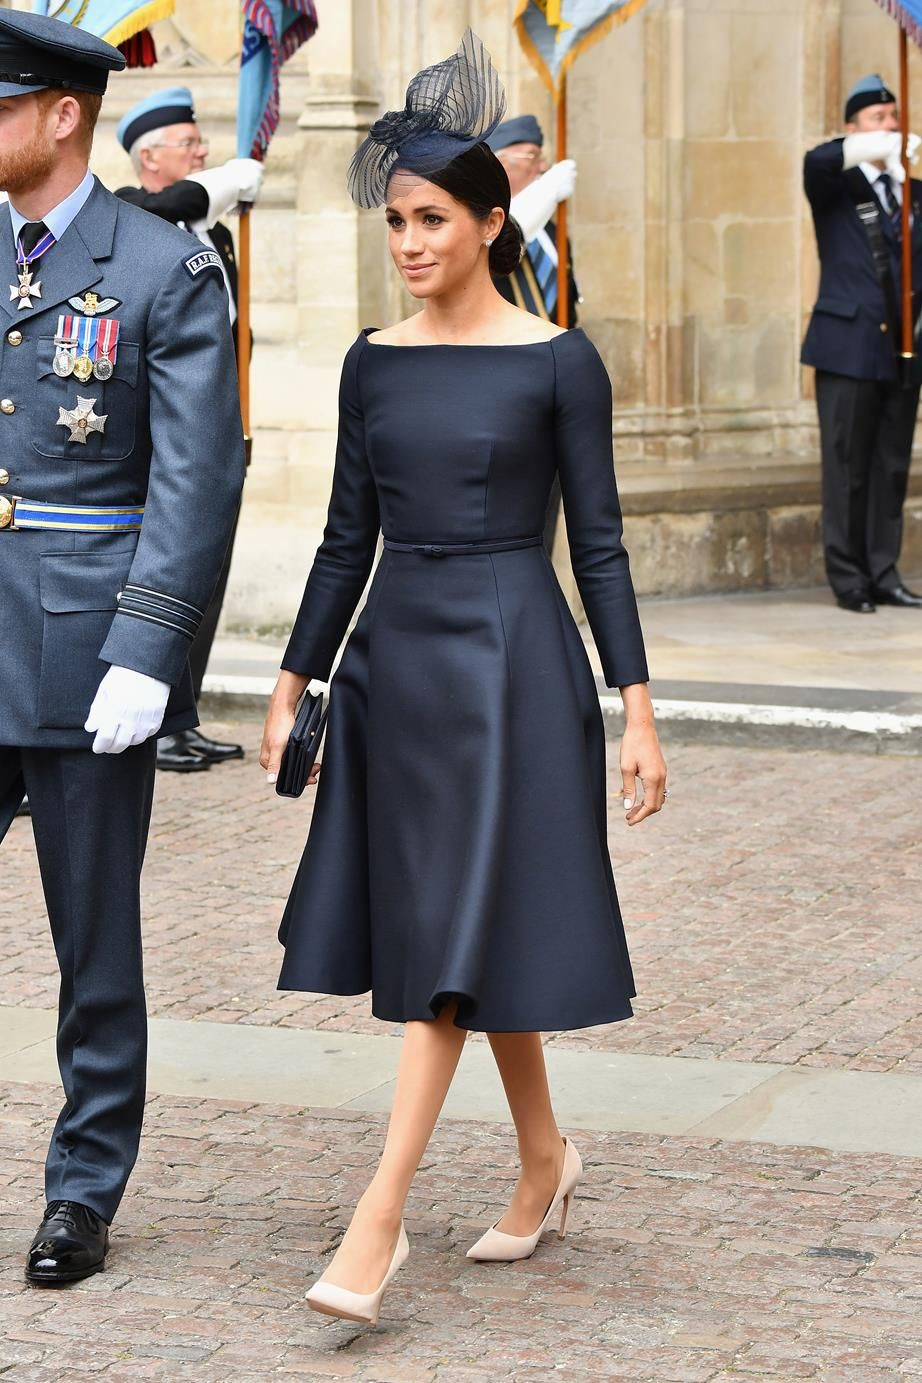 5284c54dd1ec0 Meghan Markle Steps Out In Regal Navy Dior Dress